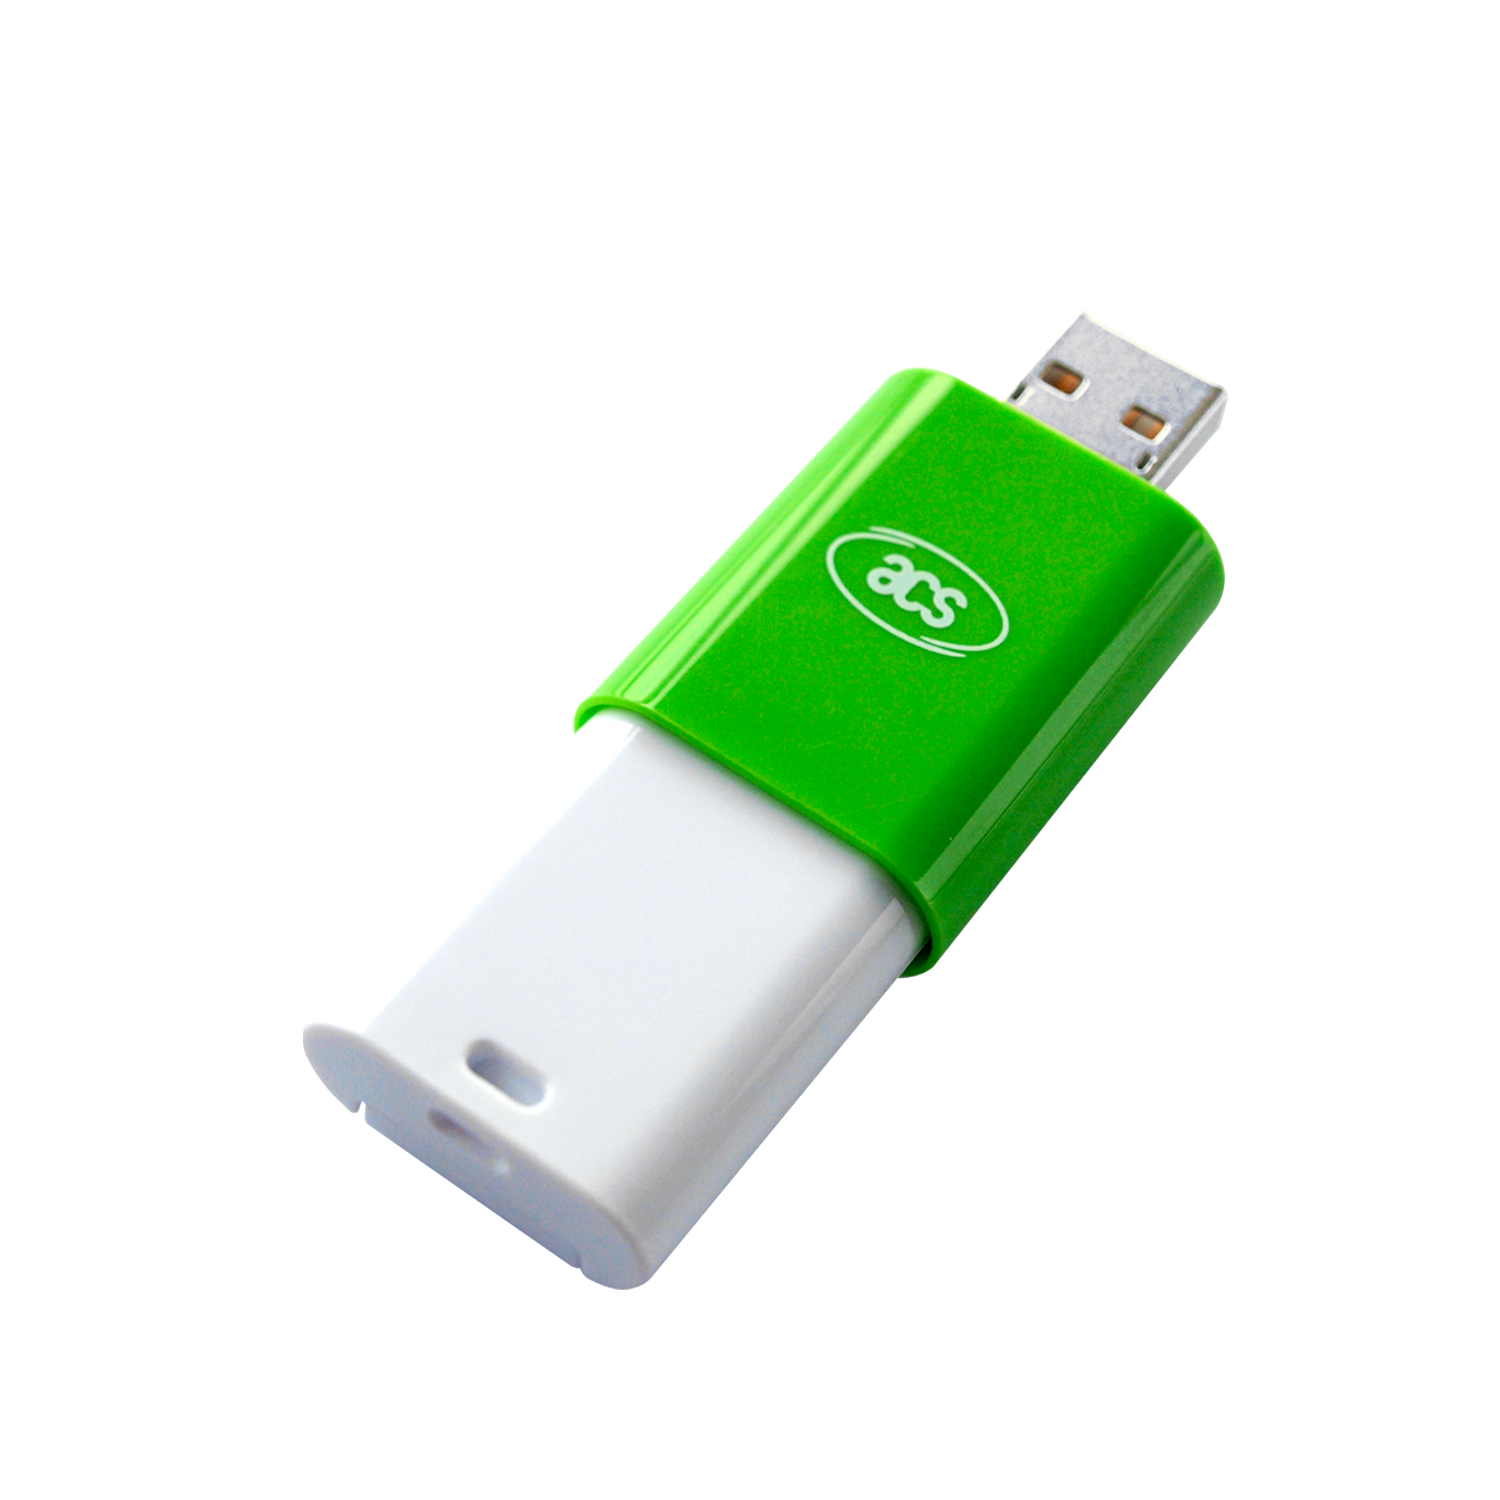 Card reader png. Pc linked readers with